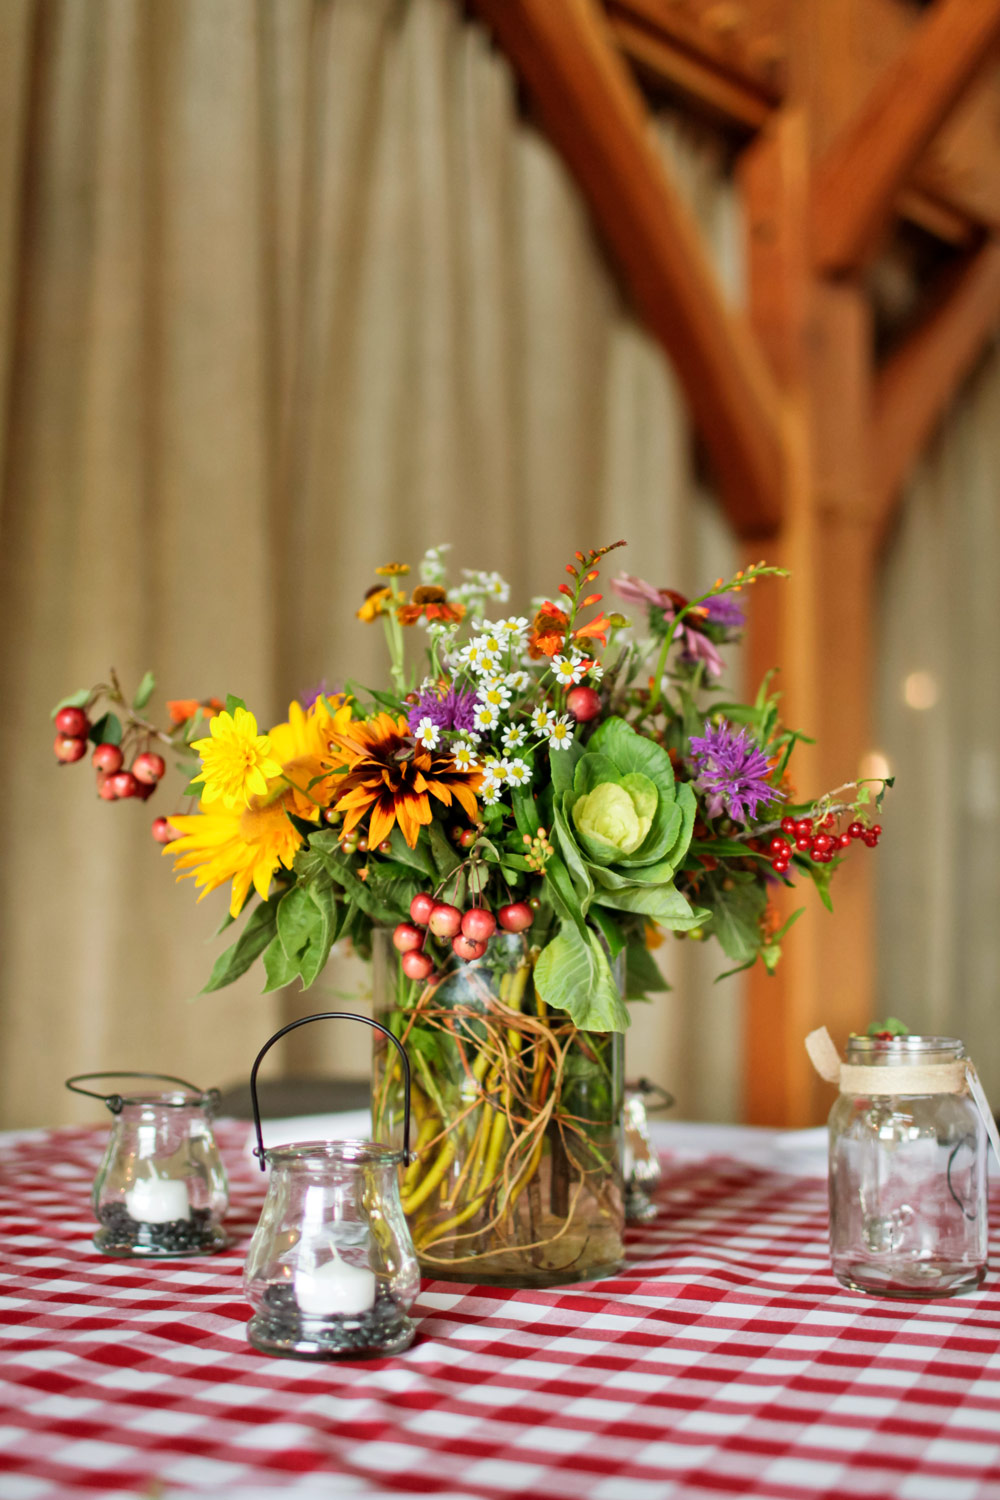 event-photographer-madison-wi-dane-county-gala-fundraiser-ruthie-hauge-photography-farm-to-table 06.jpg